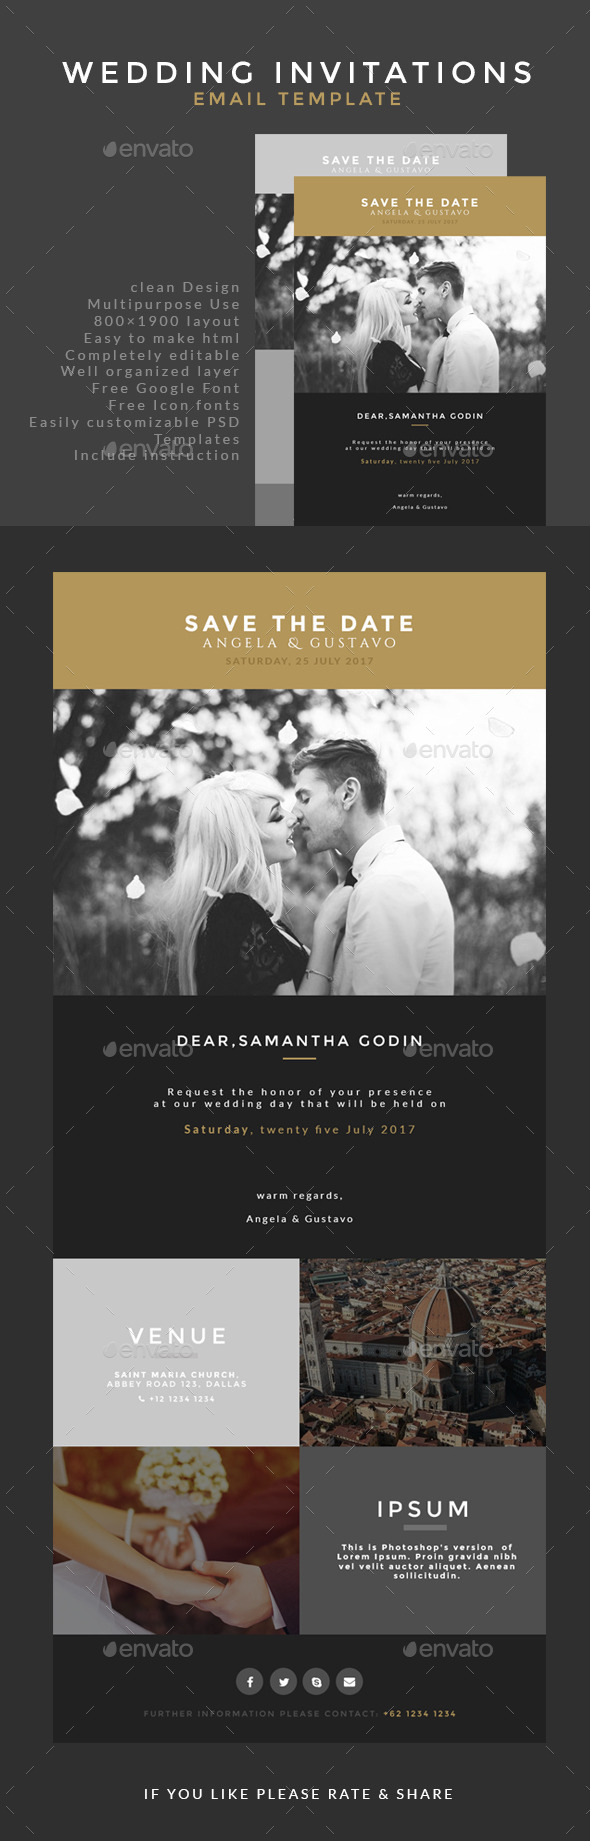 GraphicRiver Wedding Invitation Email Template 9817950